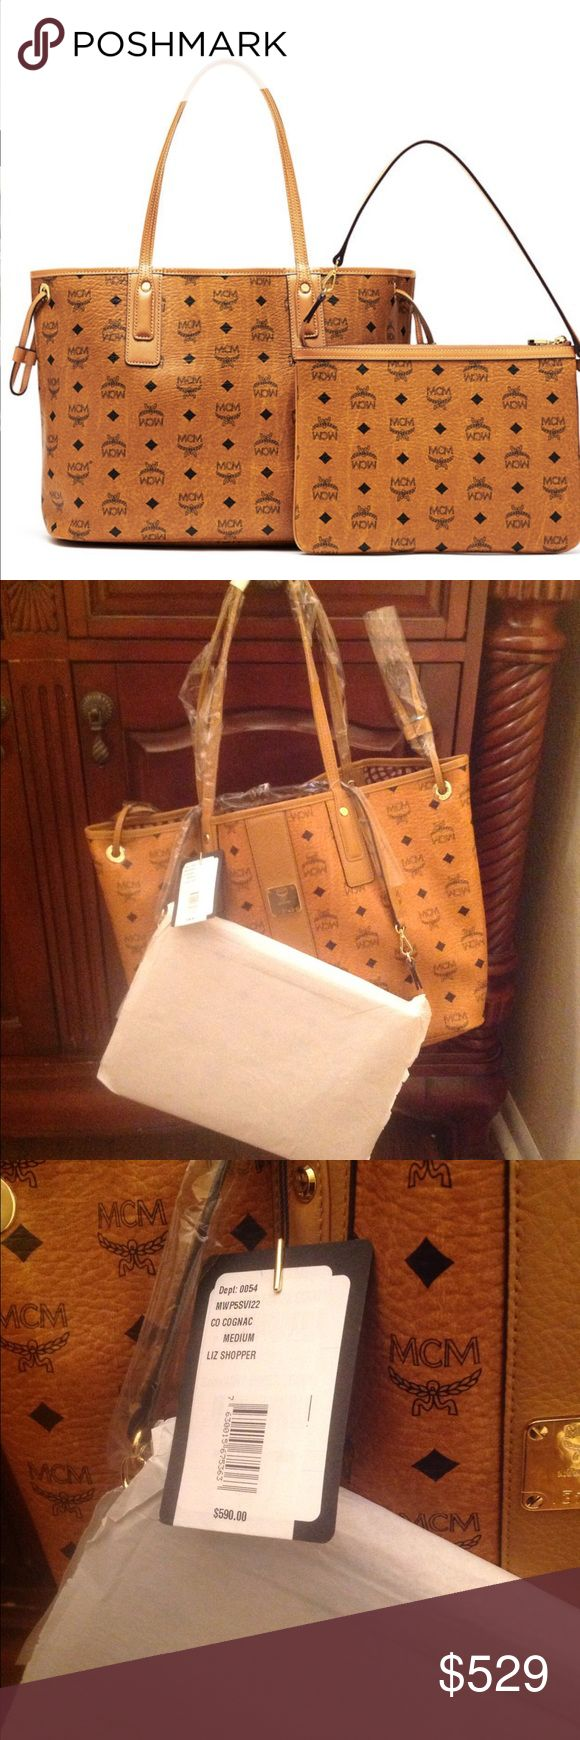 💜100% authentic NEW MCM cognac Liz tote medium Brand new. Tag attached. Cognac . No trades and price is firm. Size is medium. Pouch and duster included . MCM Bags Totes